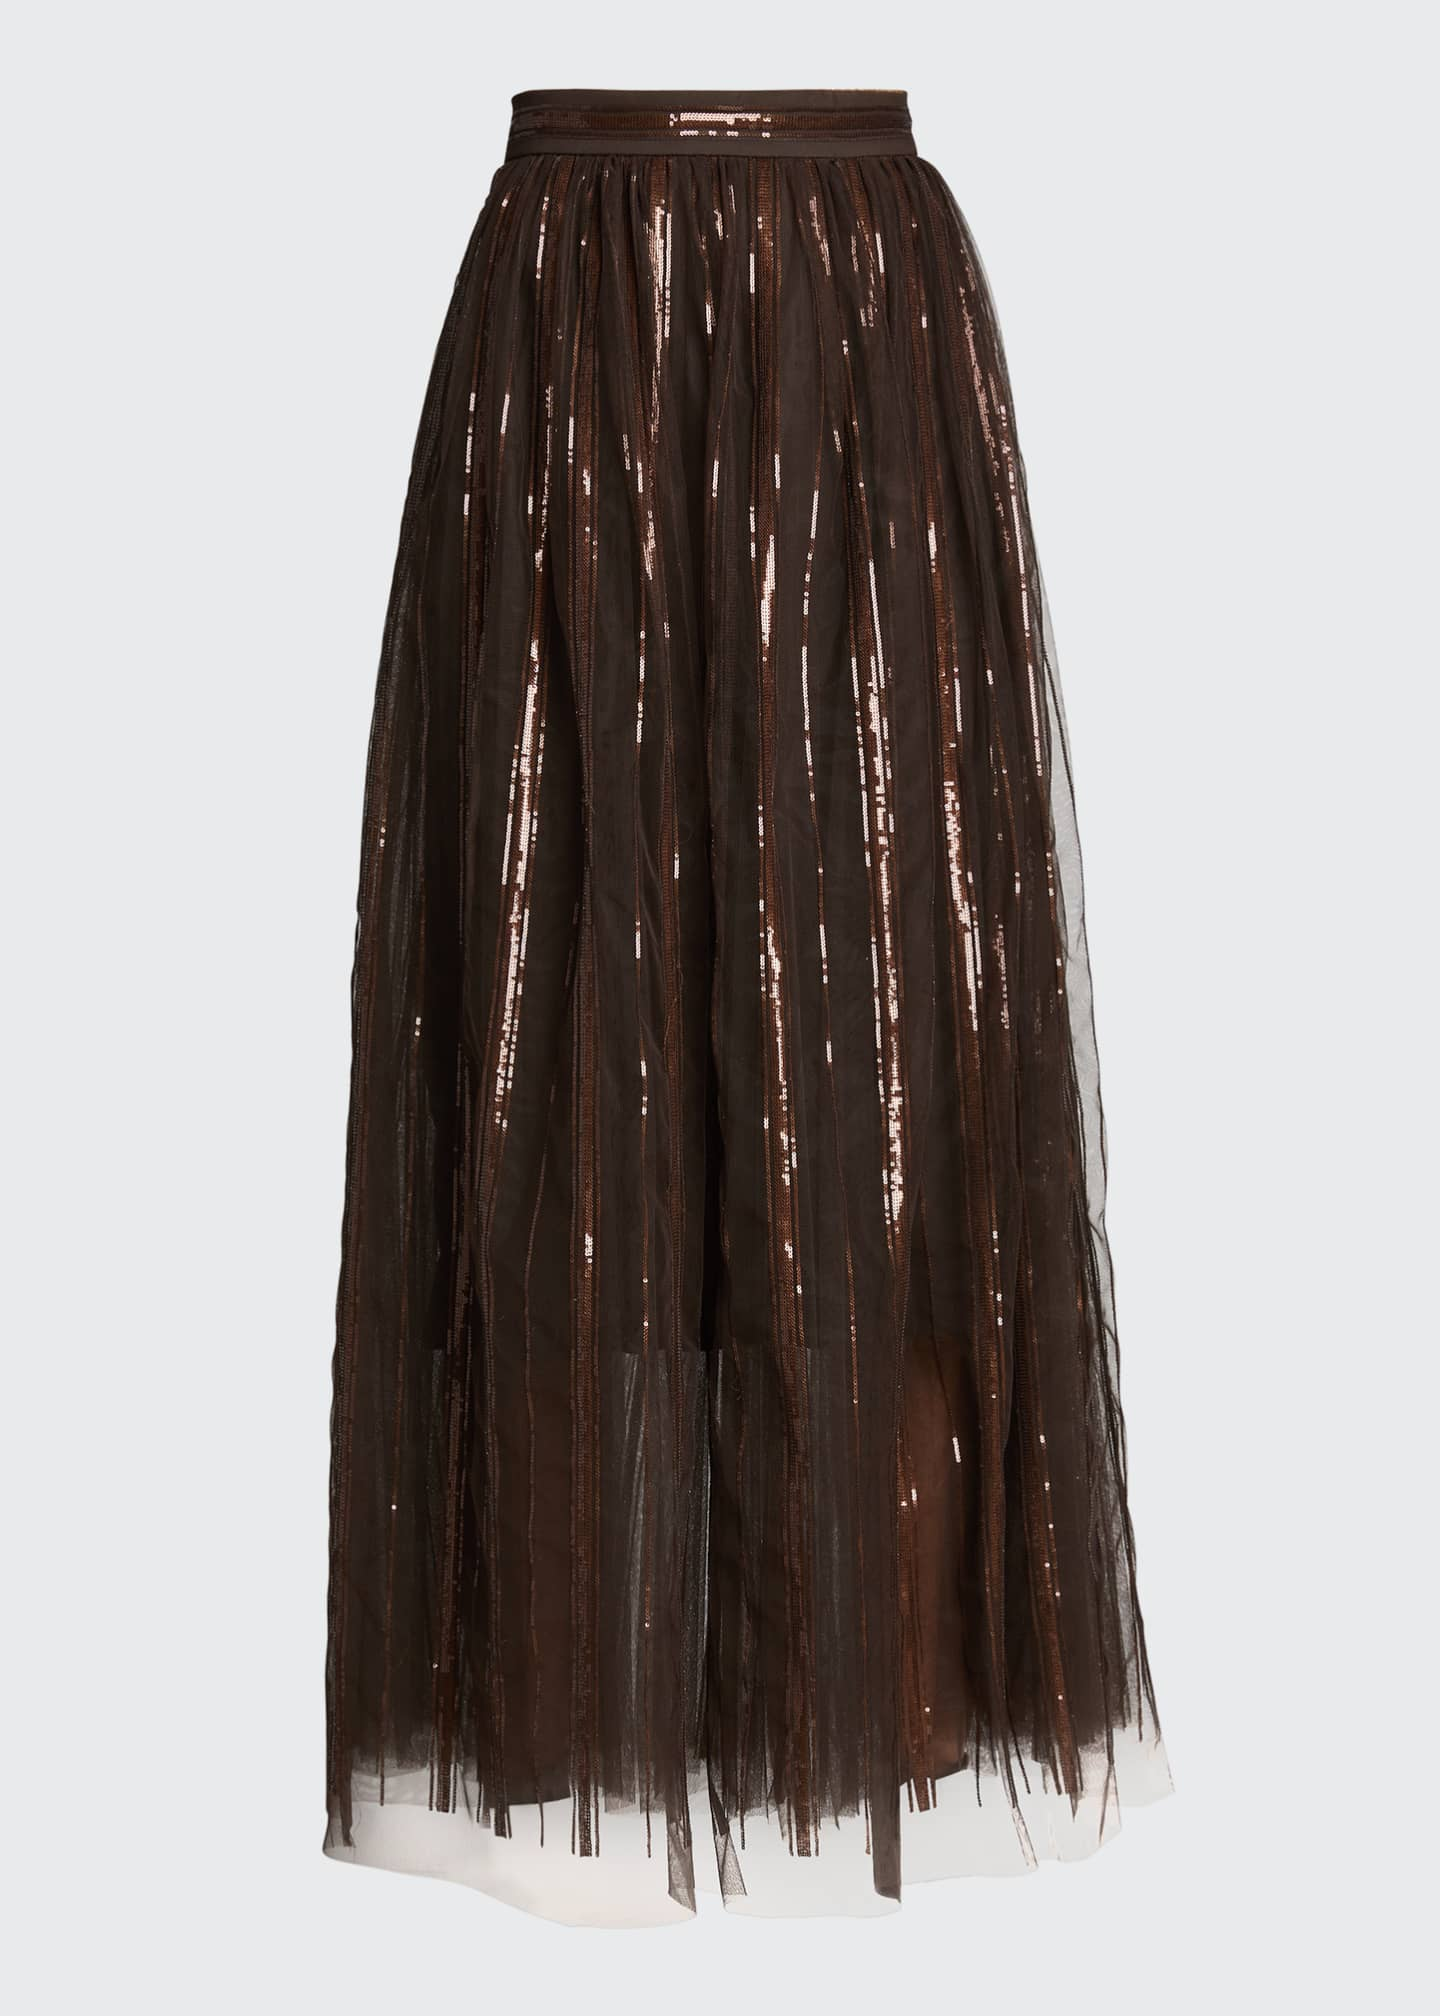 Image 5 of 5: Floral Embroidered Tulle Skirt with Leather Belt